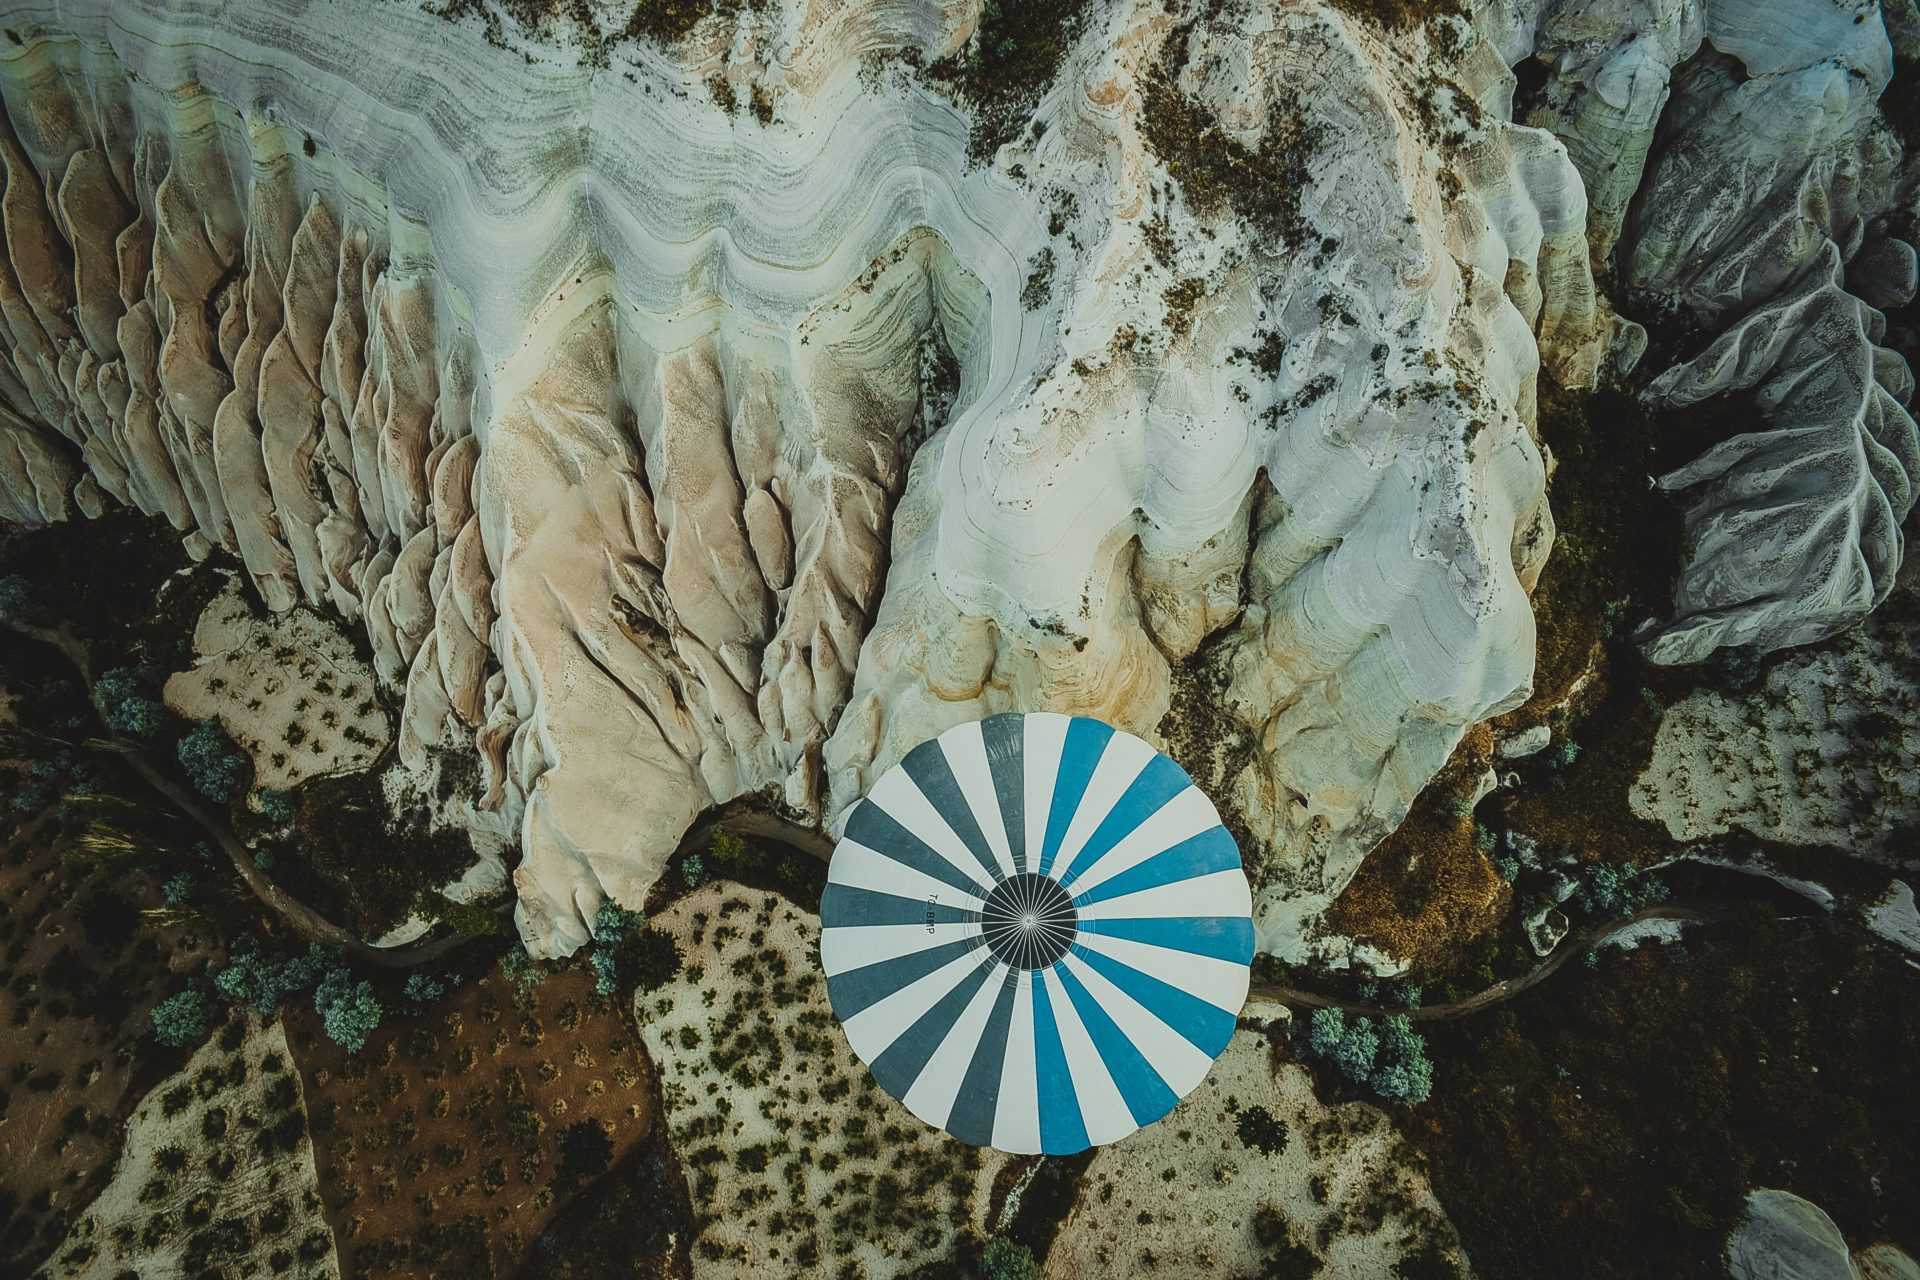 Umbrella Next to Cliff